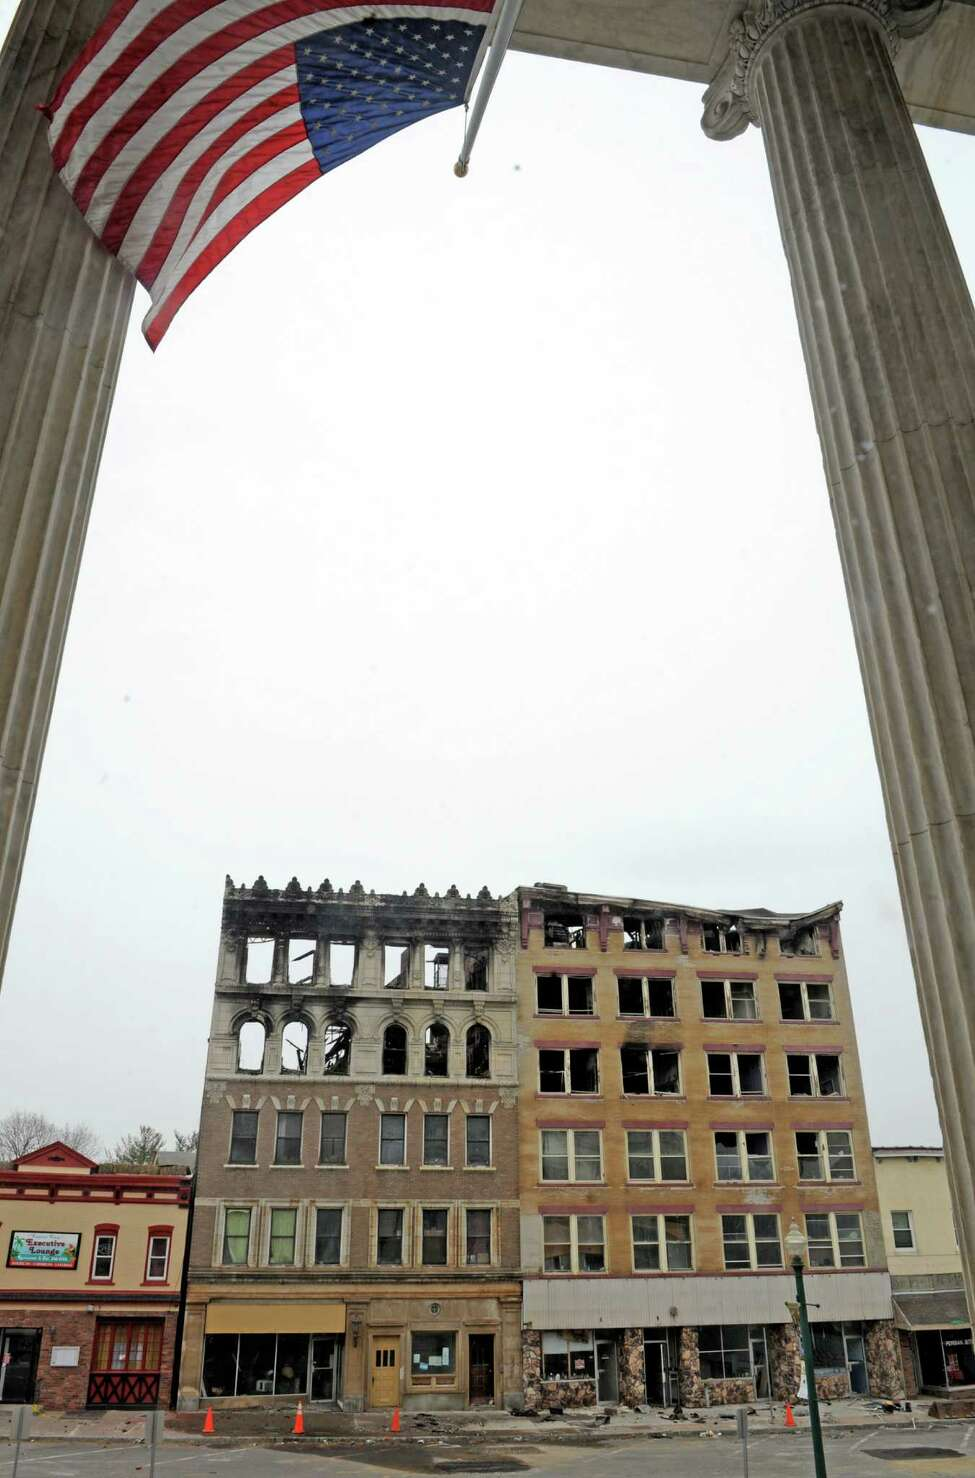 The two Jay Street buildings destroyed by fire as seen from Schenectady City Hall on Friday March 20, 2015 in Schenectady, N.Y. (Michael P. Farrell/Times Union)